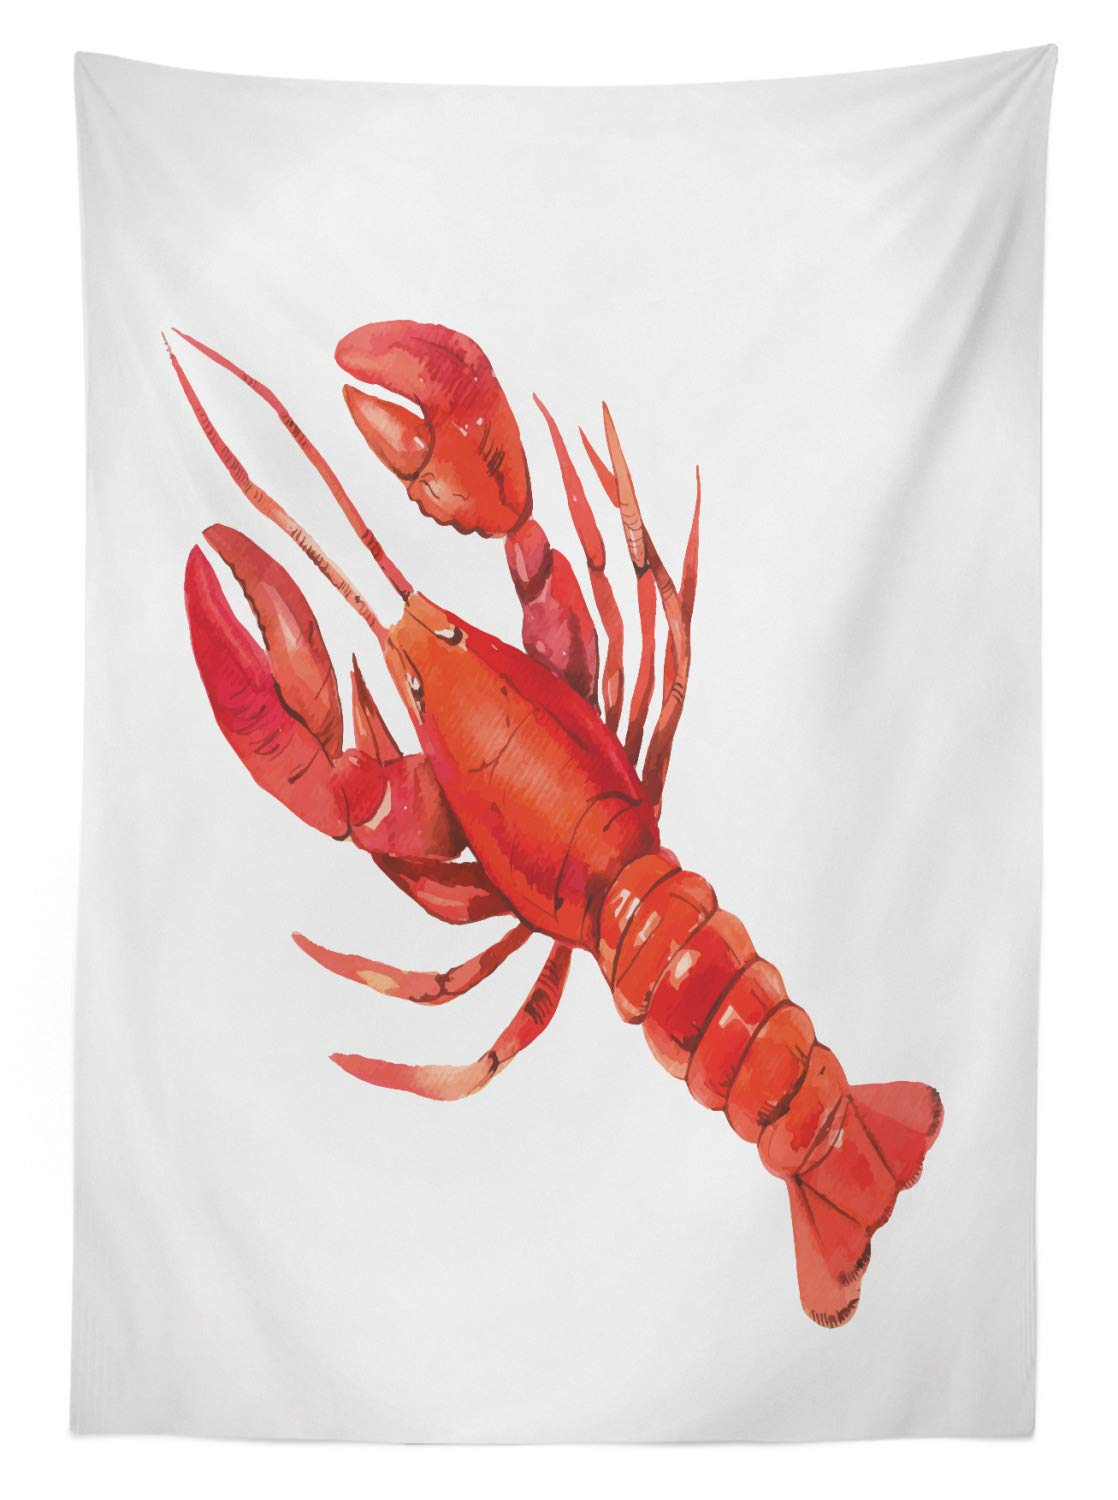 Ambesonne Lobster Outdoor Tablecloth, Watercolor Effect Crustacean Image Mediterranean Sea Food Cuisine Concept, Decorative Washable Picnic Table Cloth, 58'' X 120'', White and Vermilion by Ambesonne (Image #2)